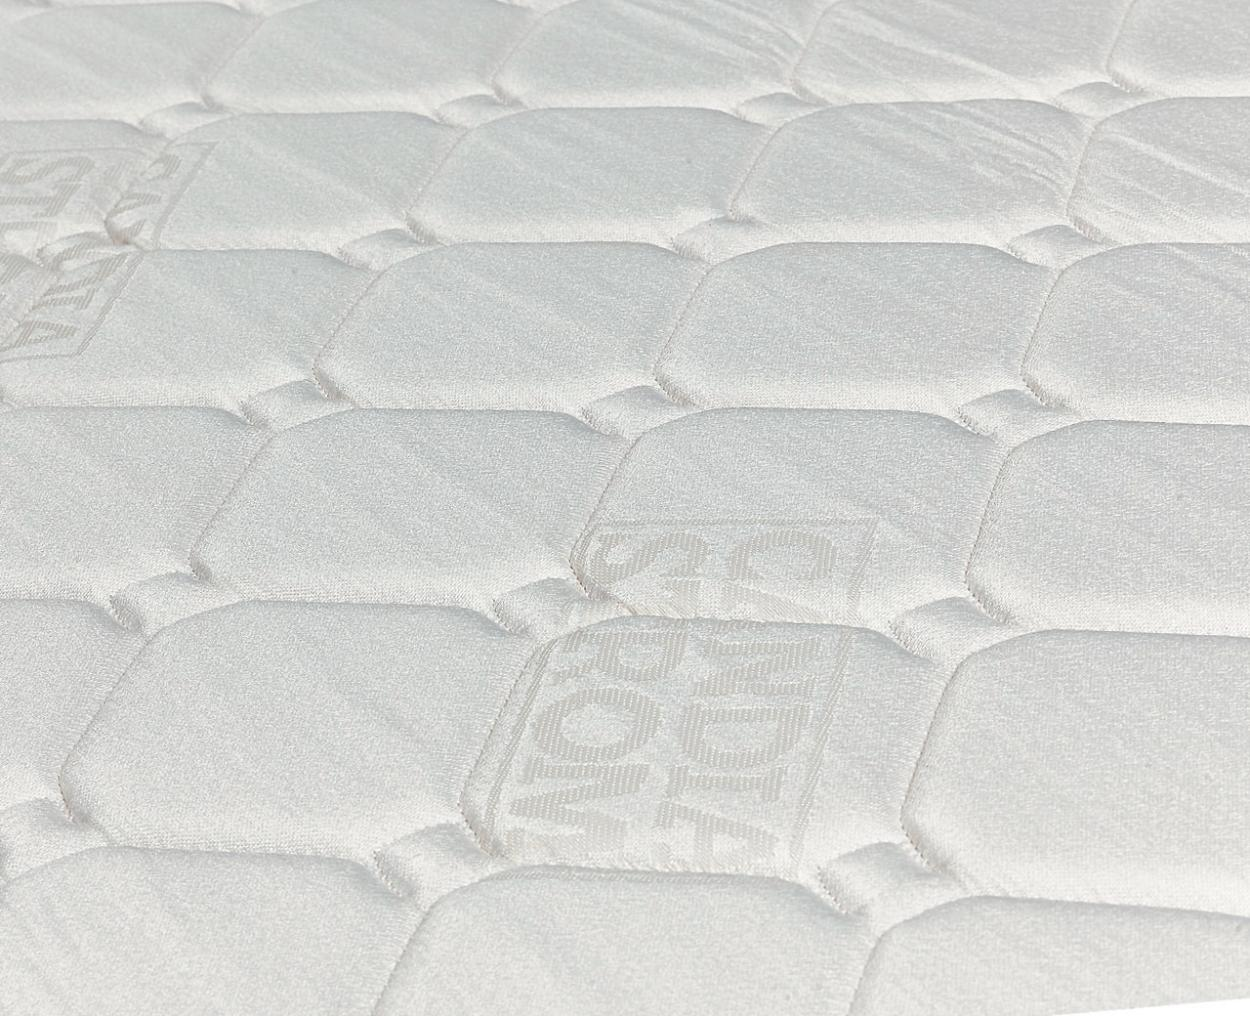 CandiaStrom - Mattress EROS - CLASSIC COLLECTION - Details